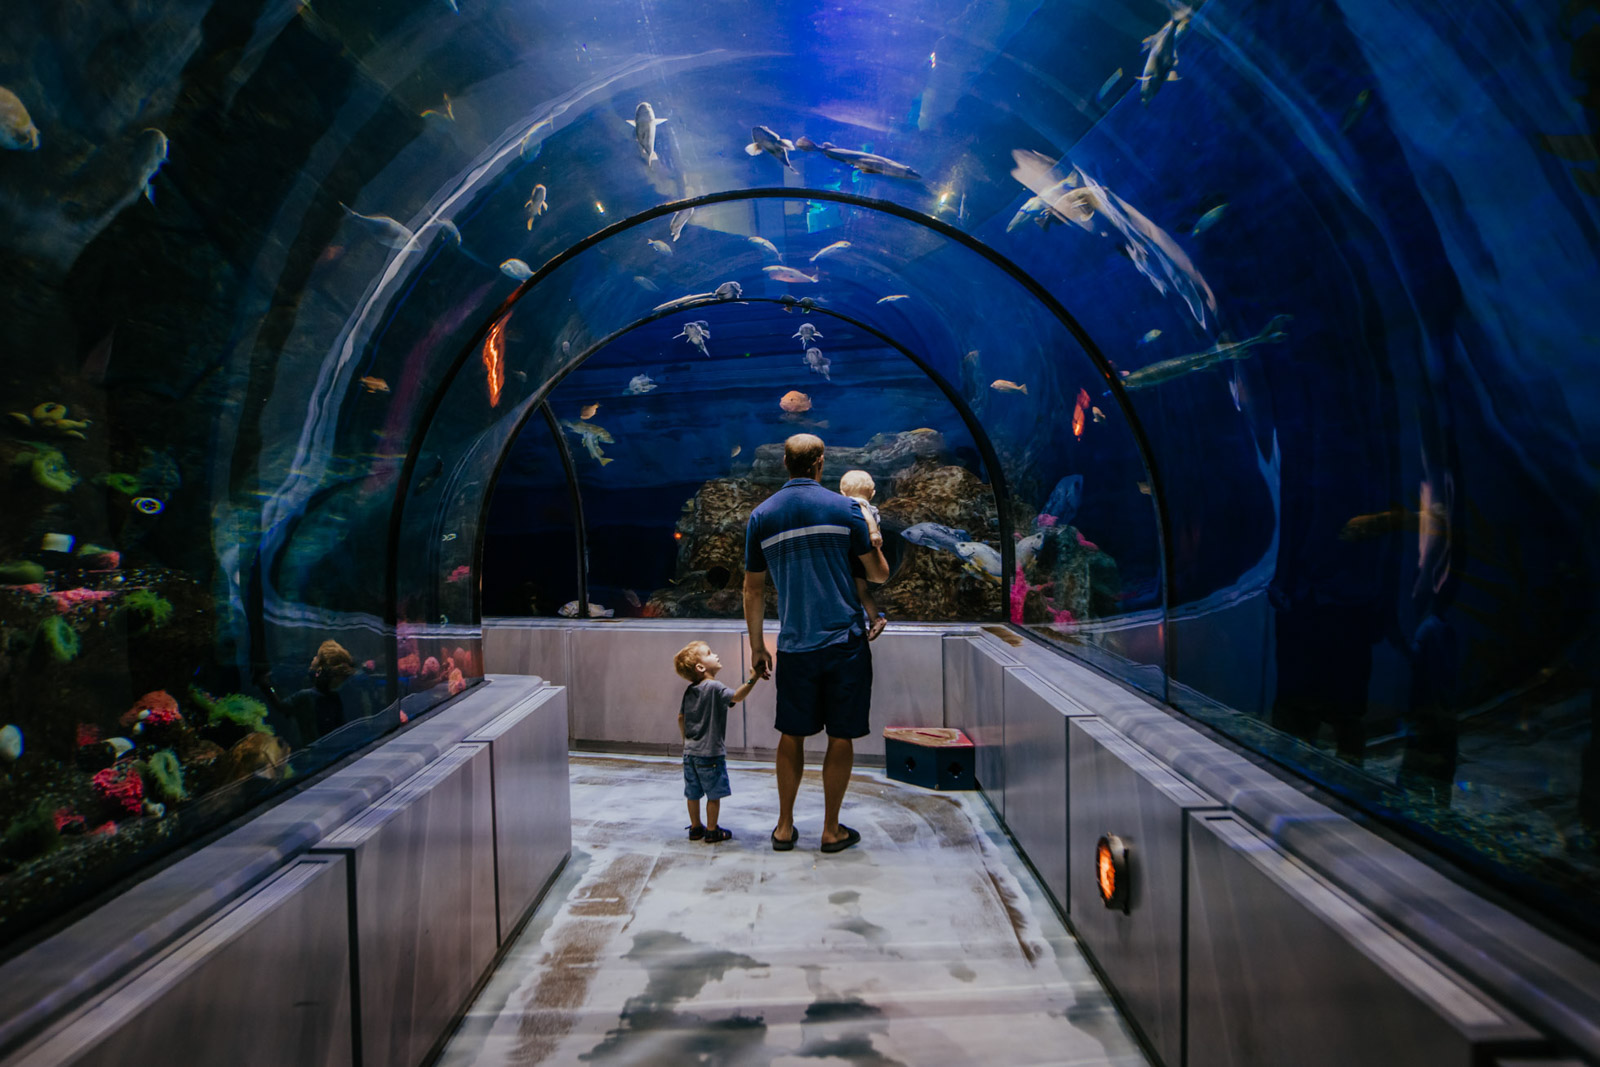 aquarium tunnel magic family dad children toddler babyphotographer annick simon photographes paradis documentaires quebec